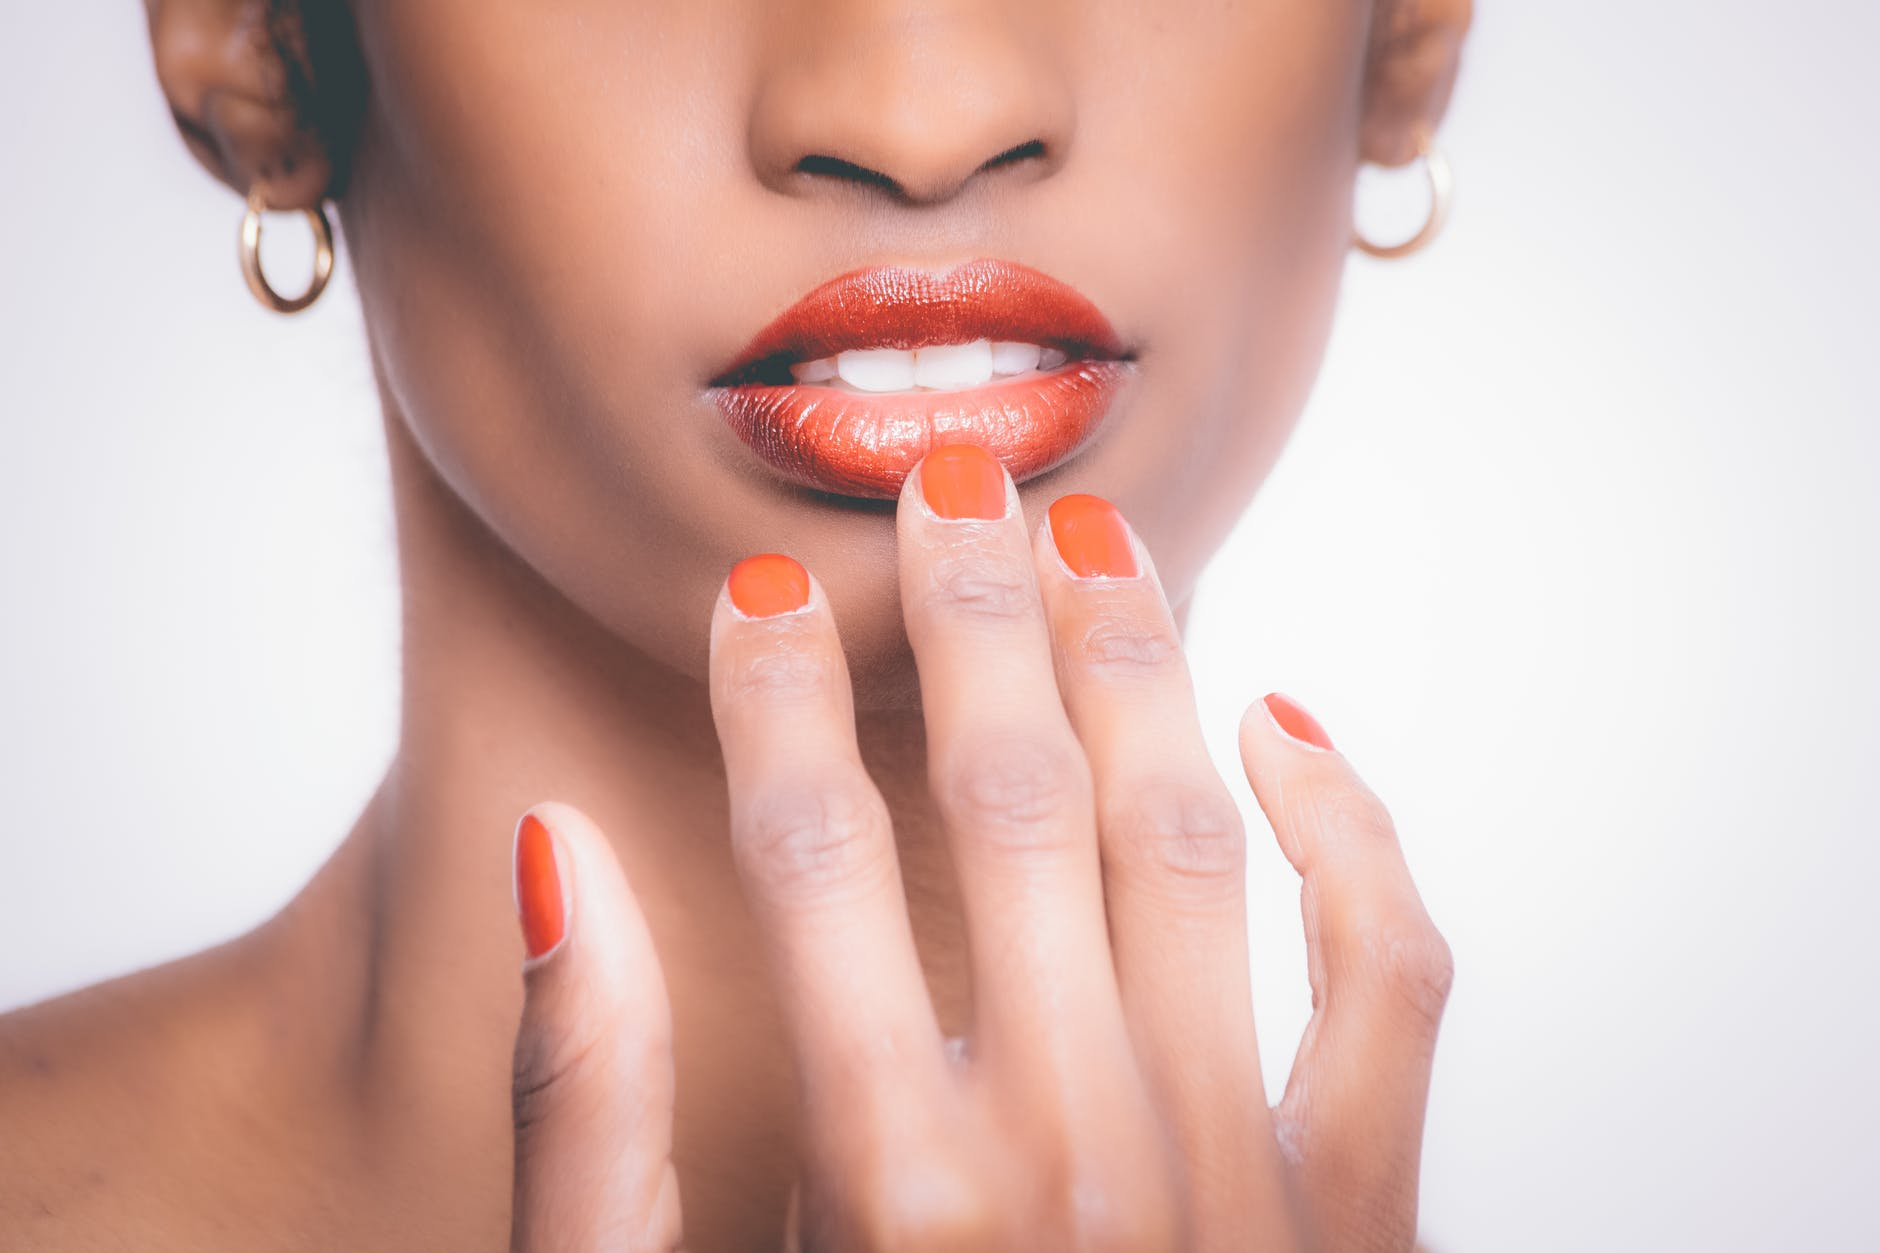 woman with orange manicure